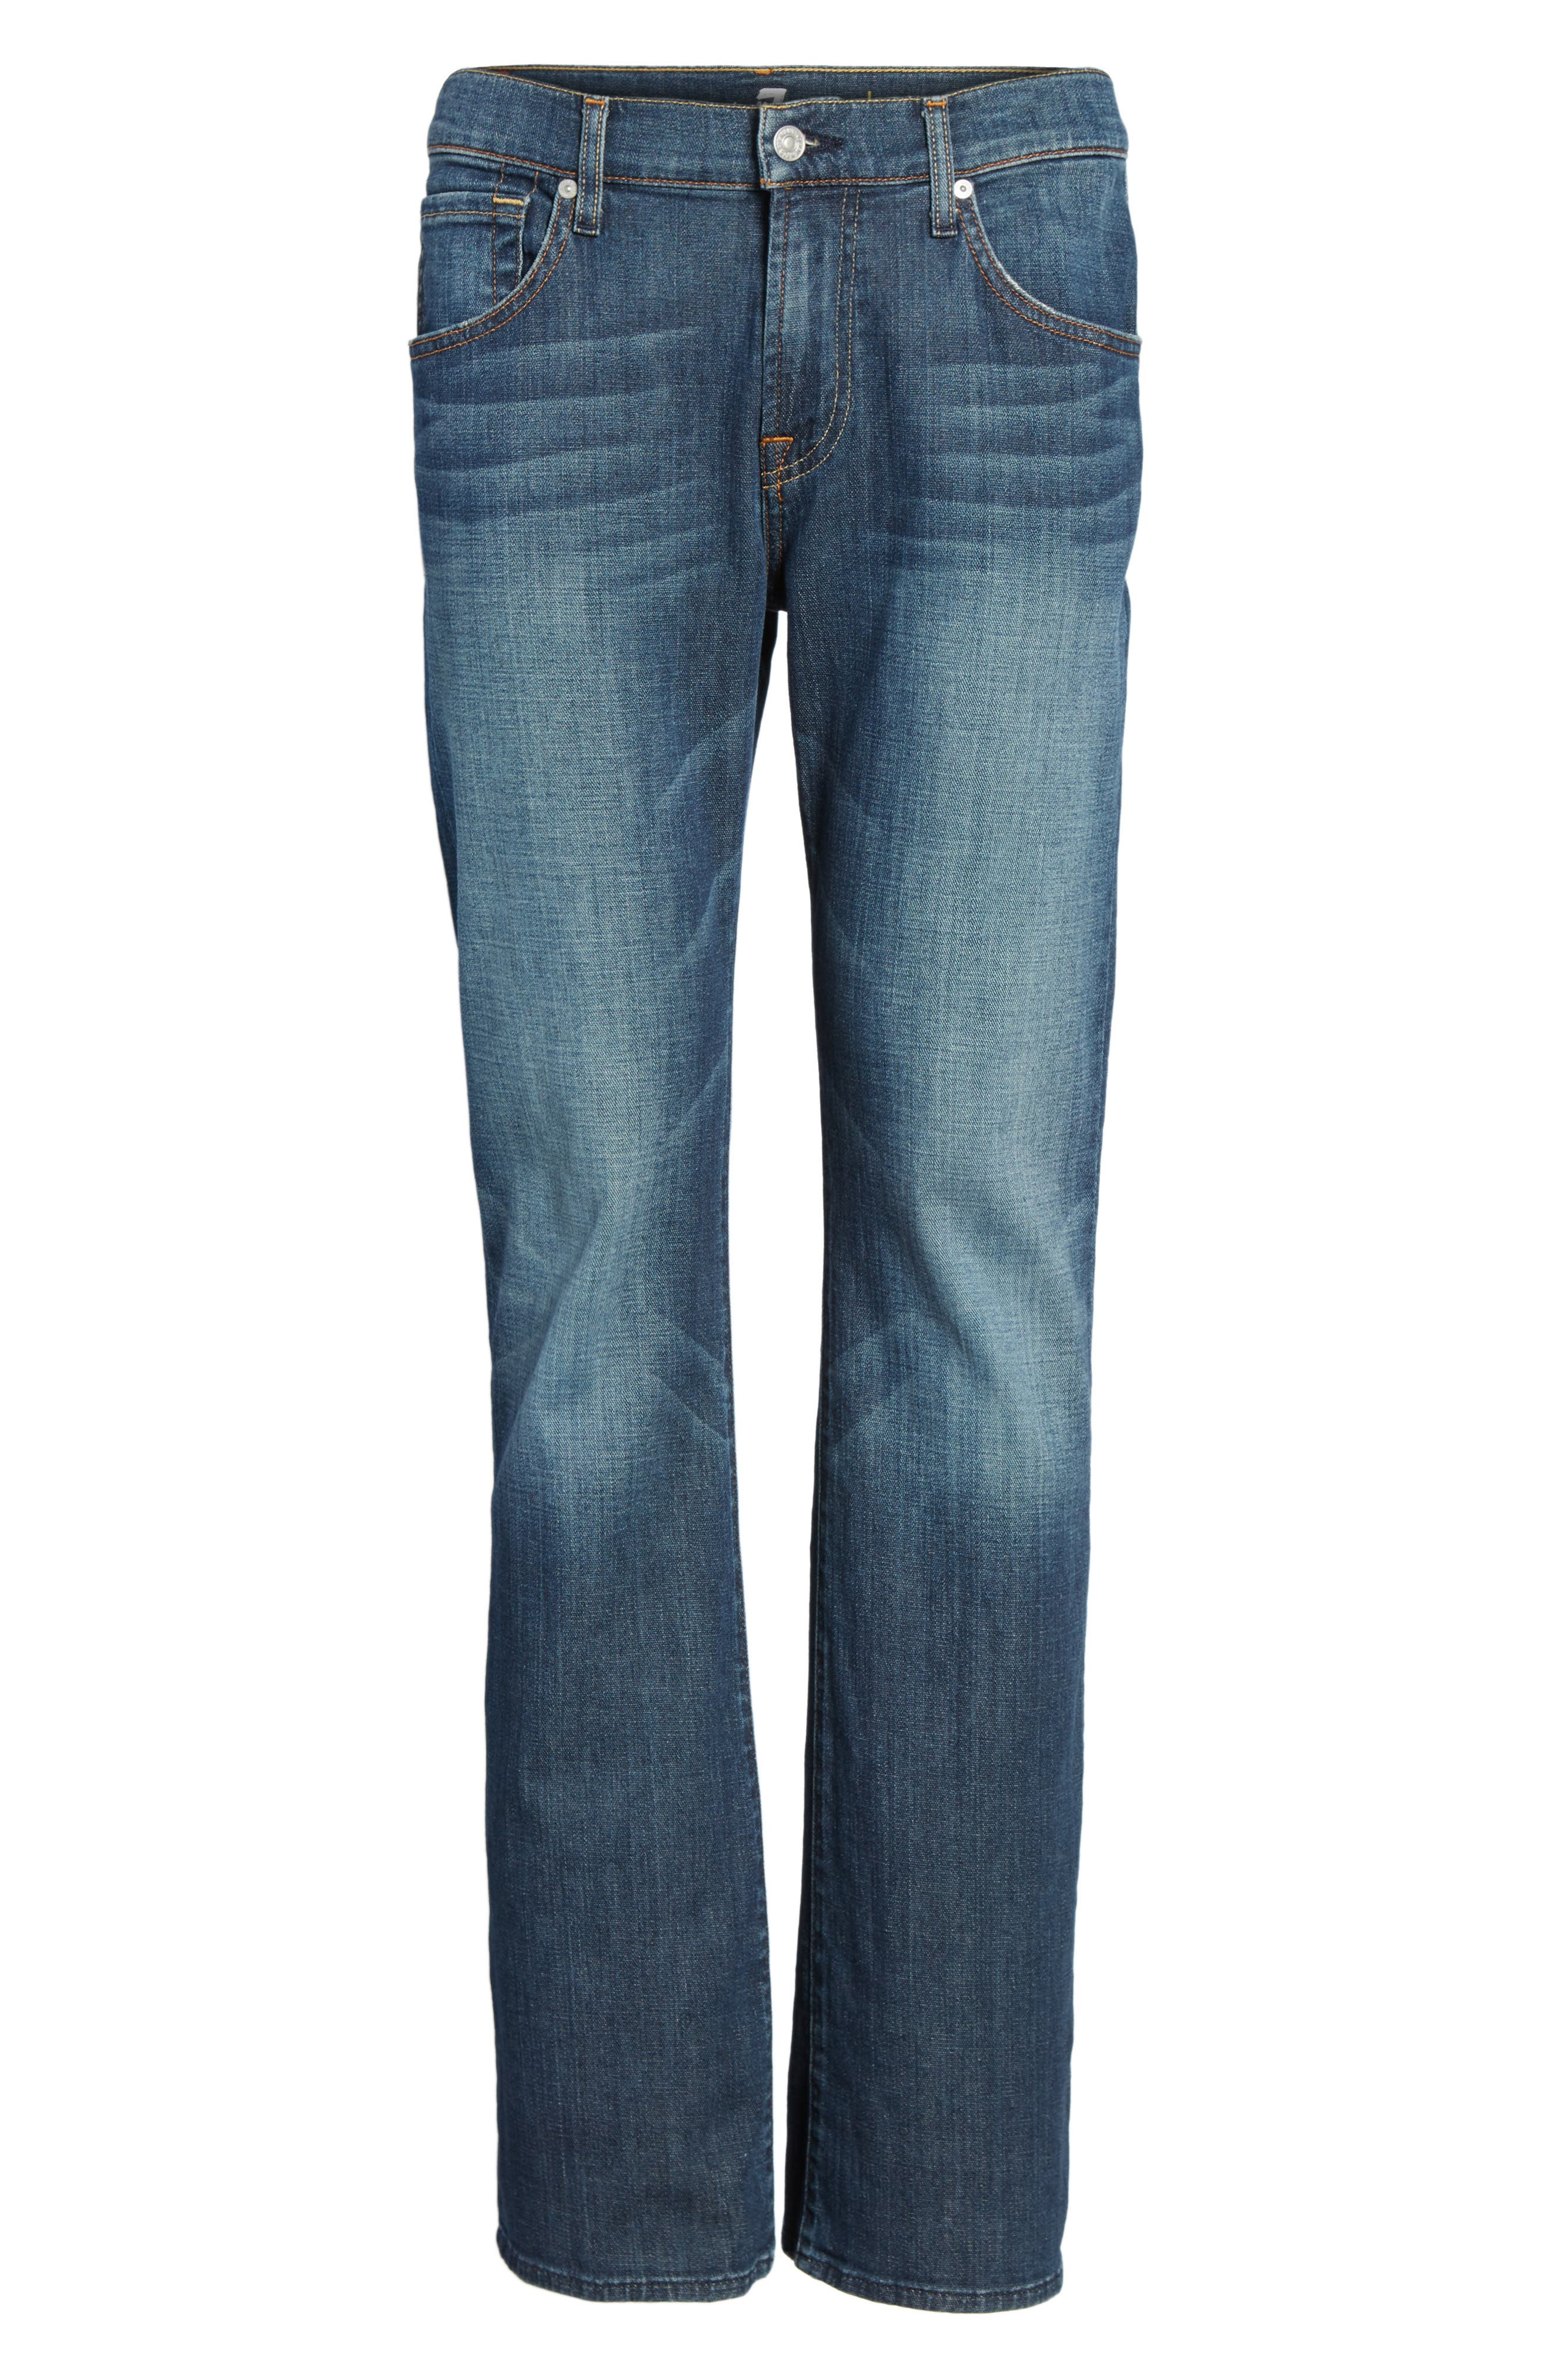 7 FOR ALL MANKIND<SUP>®</SUP>, Brett Bootcut Jeans, Alternate thumbnail 7, color, DARK NEW YORK